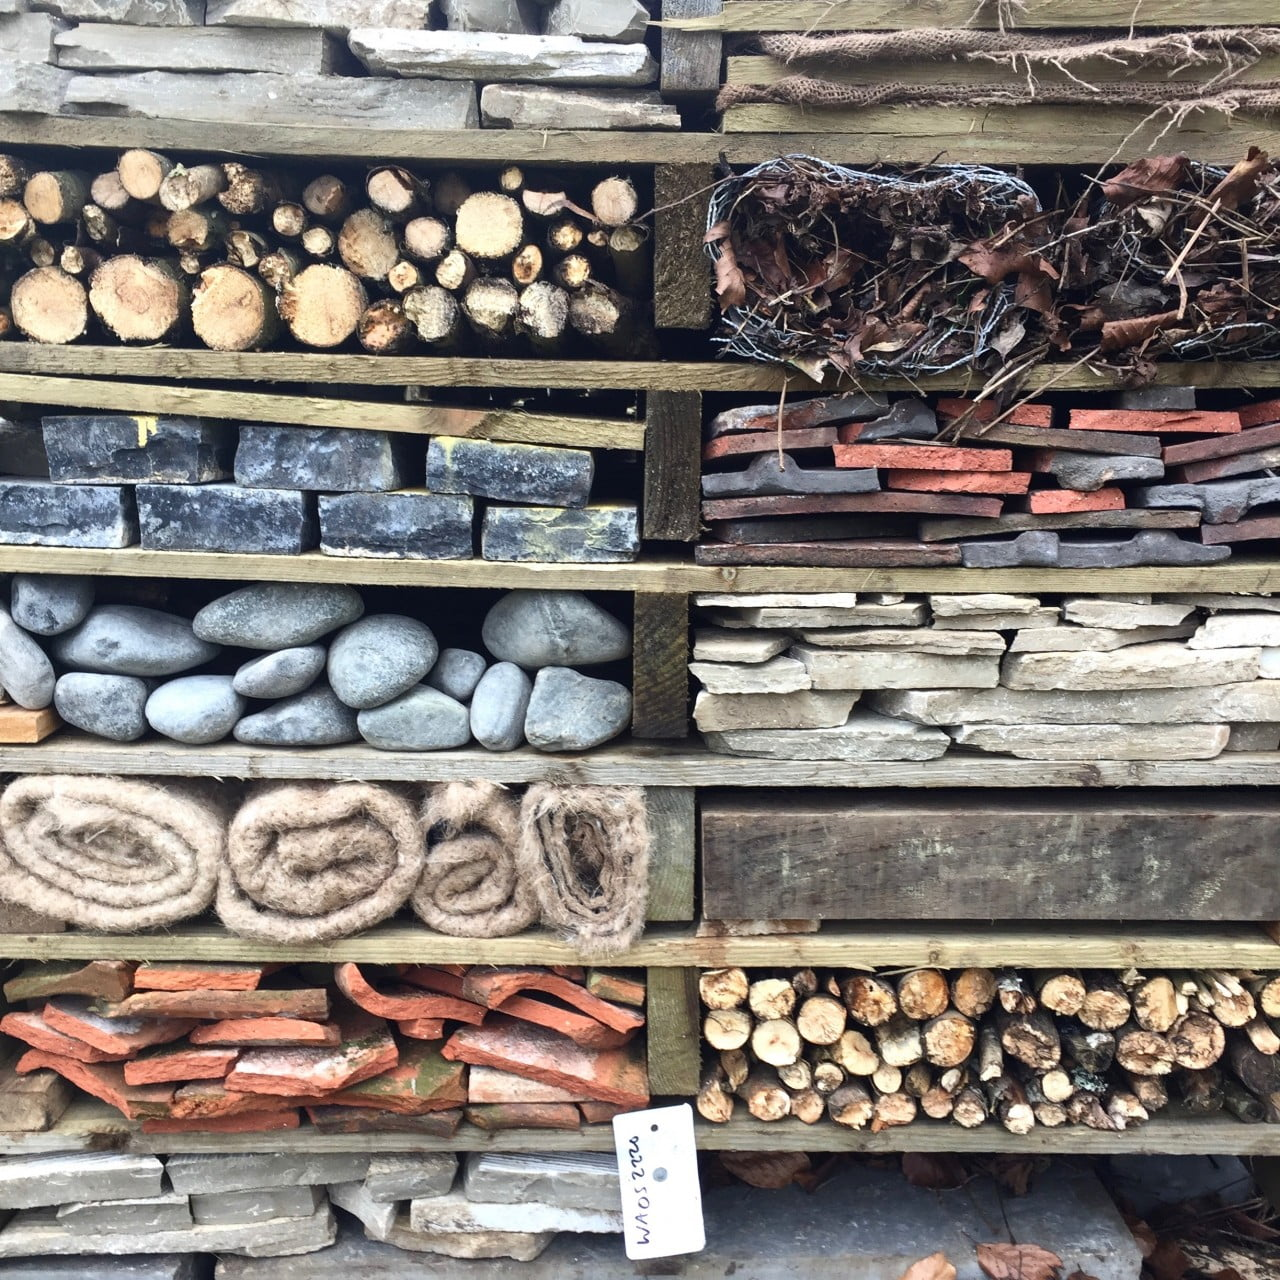 This is a bug hotel made by The Garden Design Co Ltd for a woodland garden out of recycled pallets